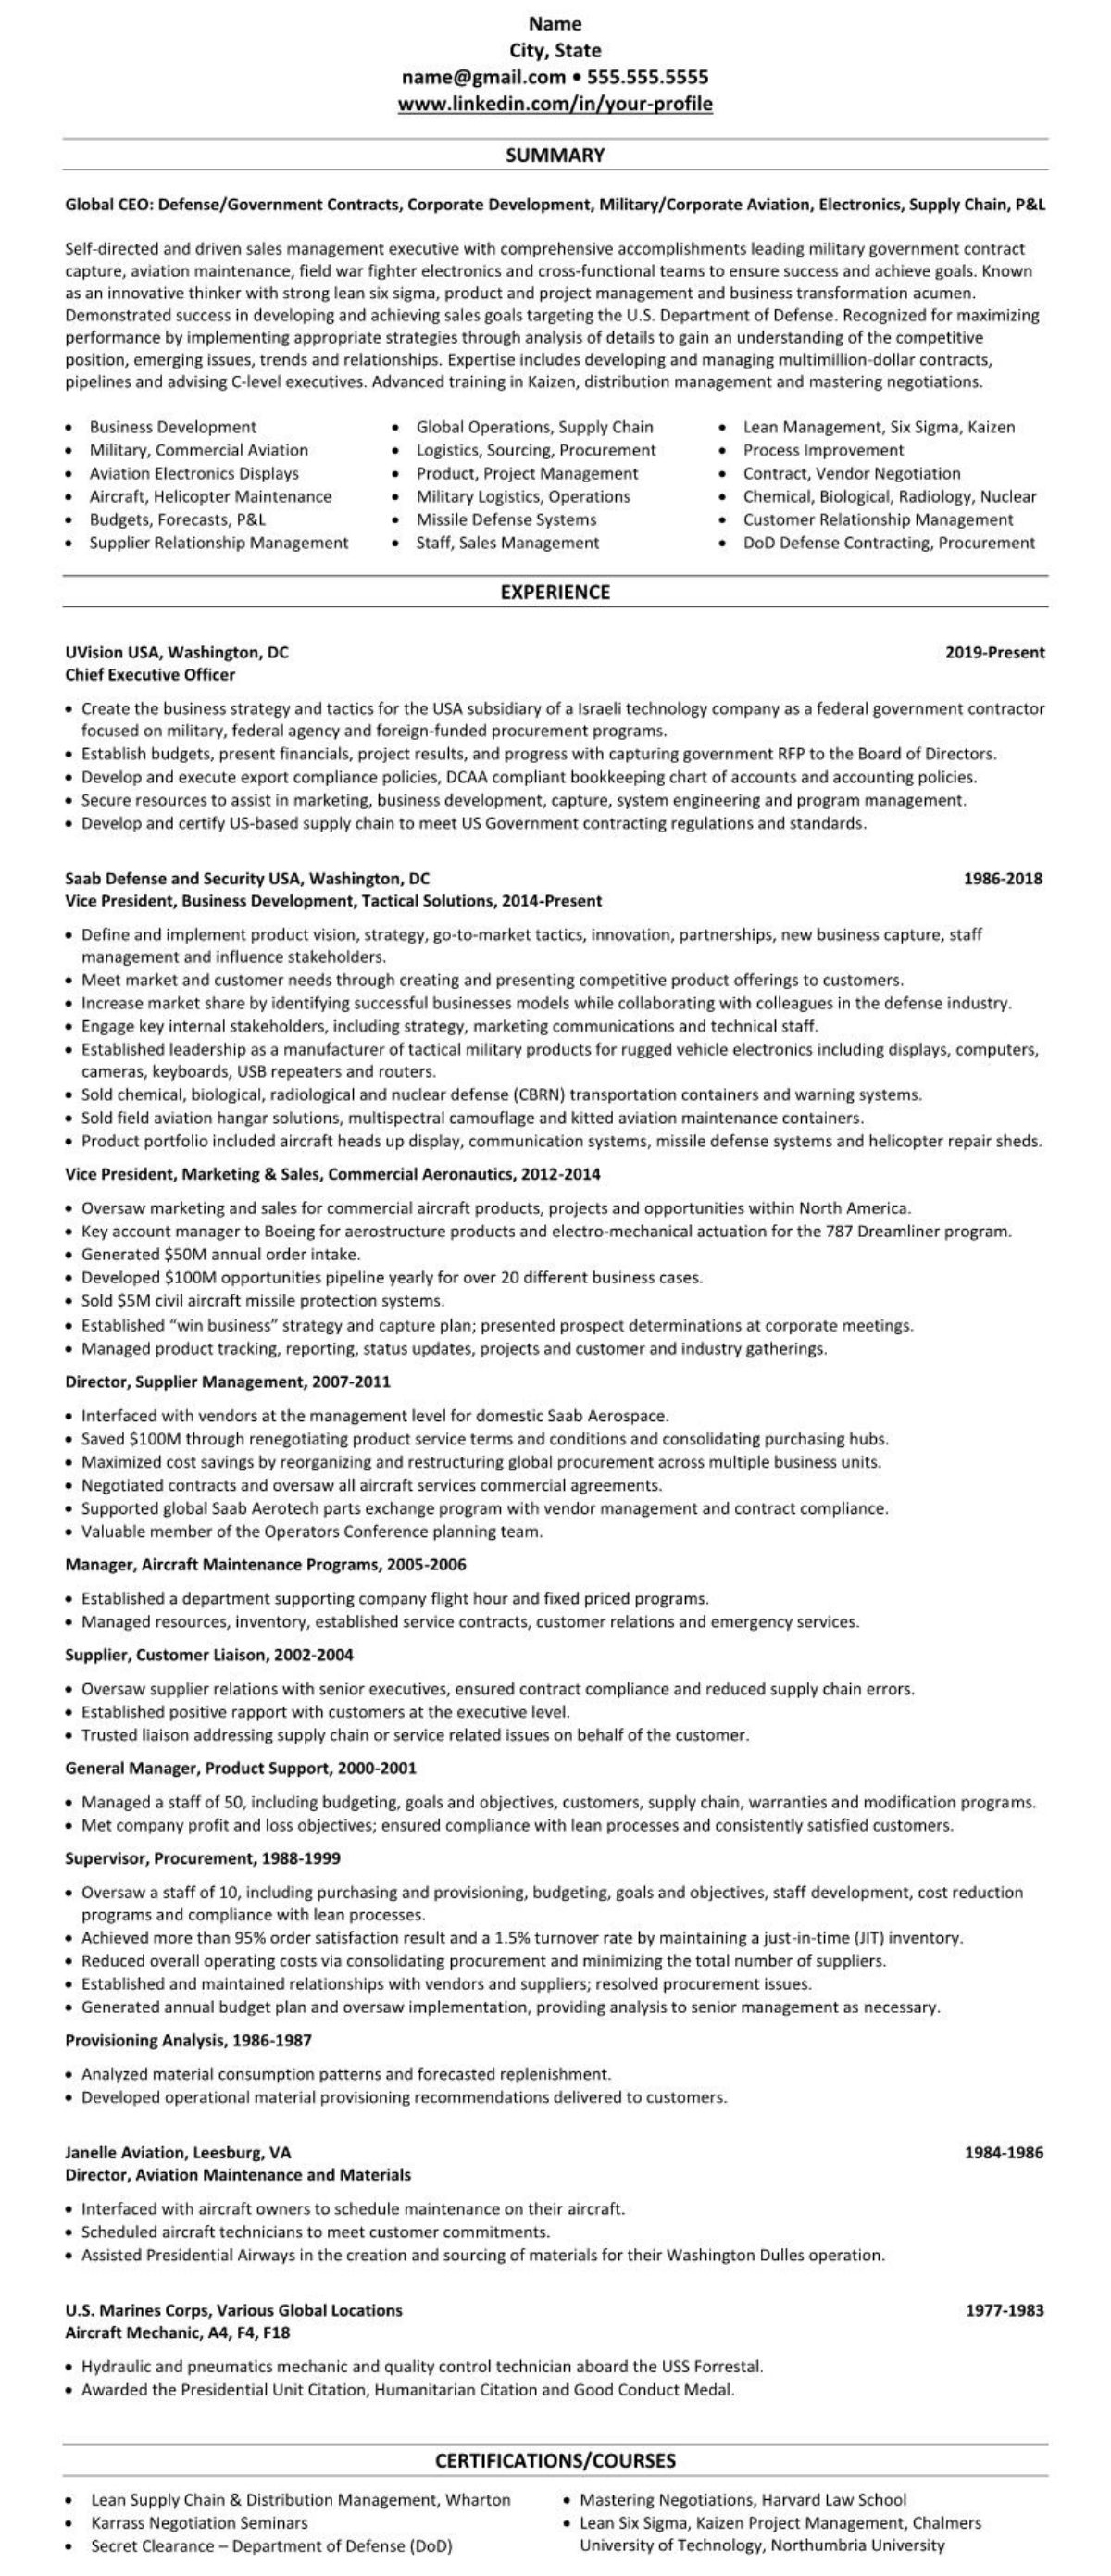 defense government contracts professional executive resume example 2266